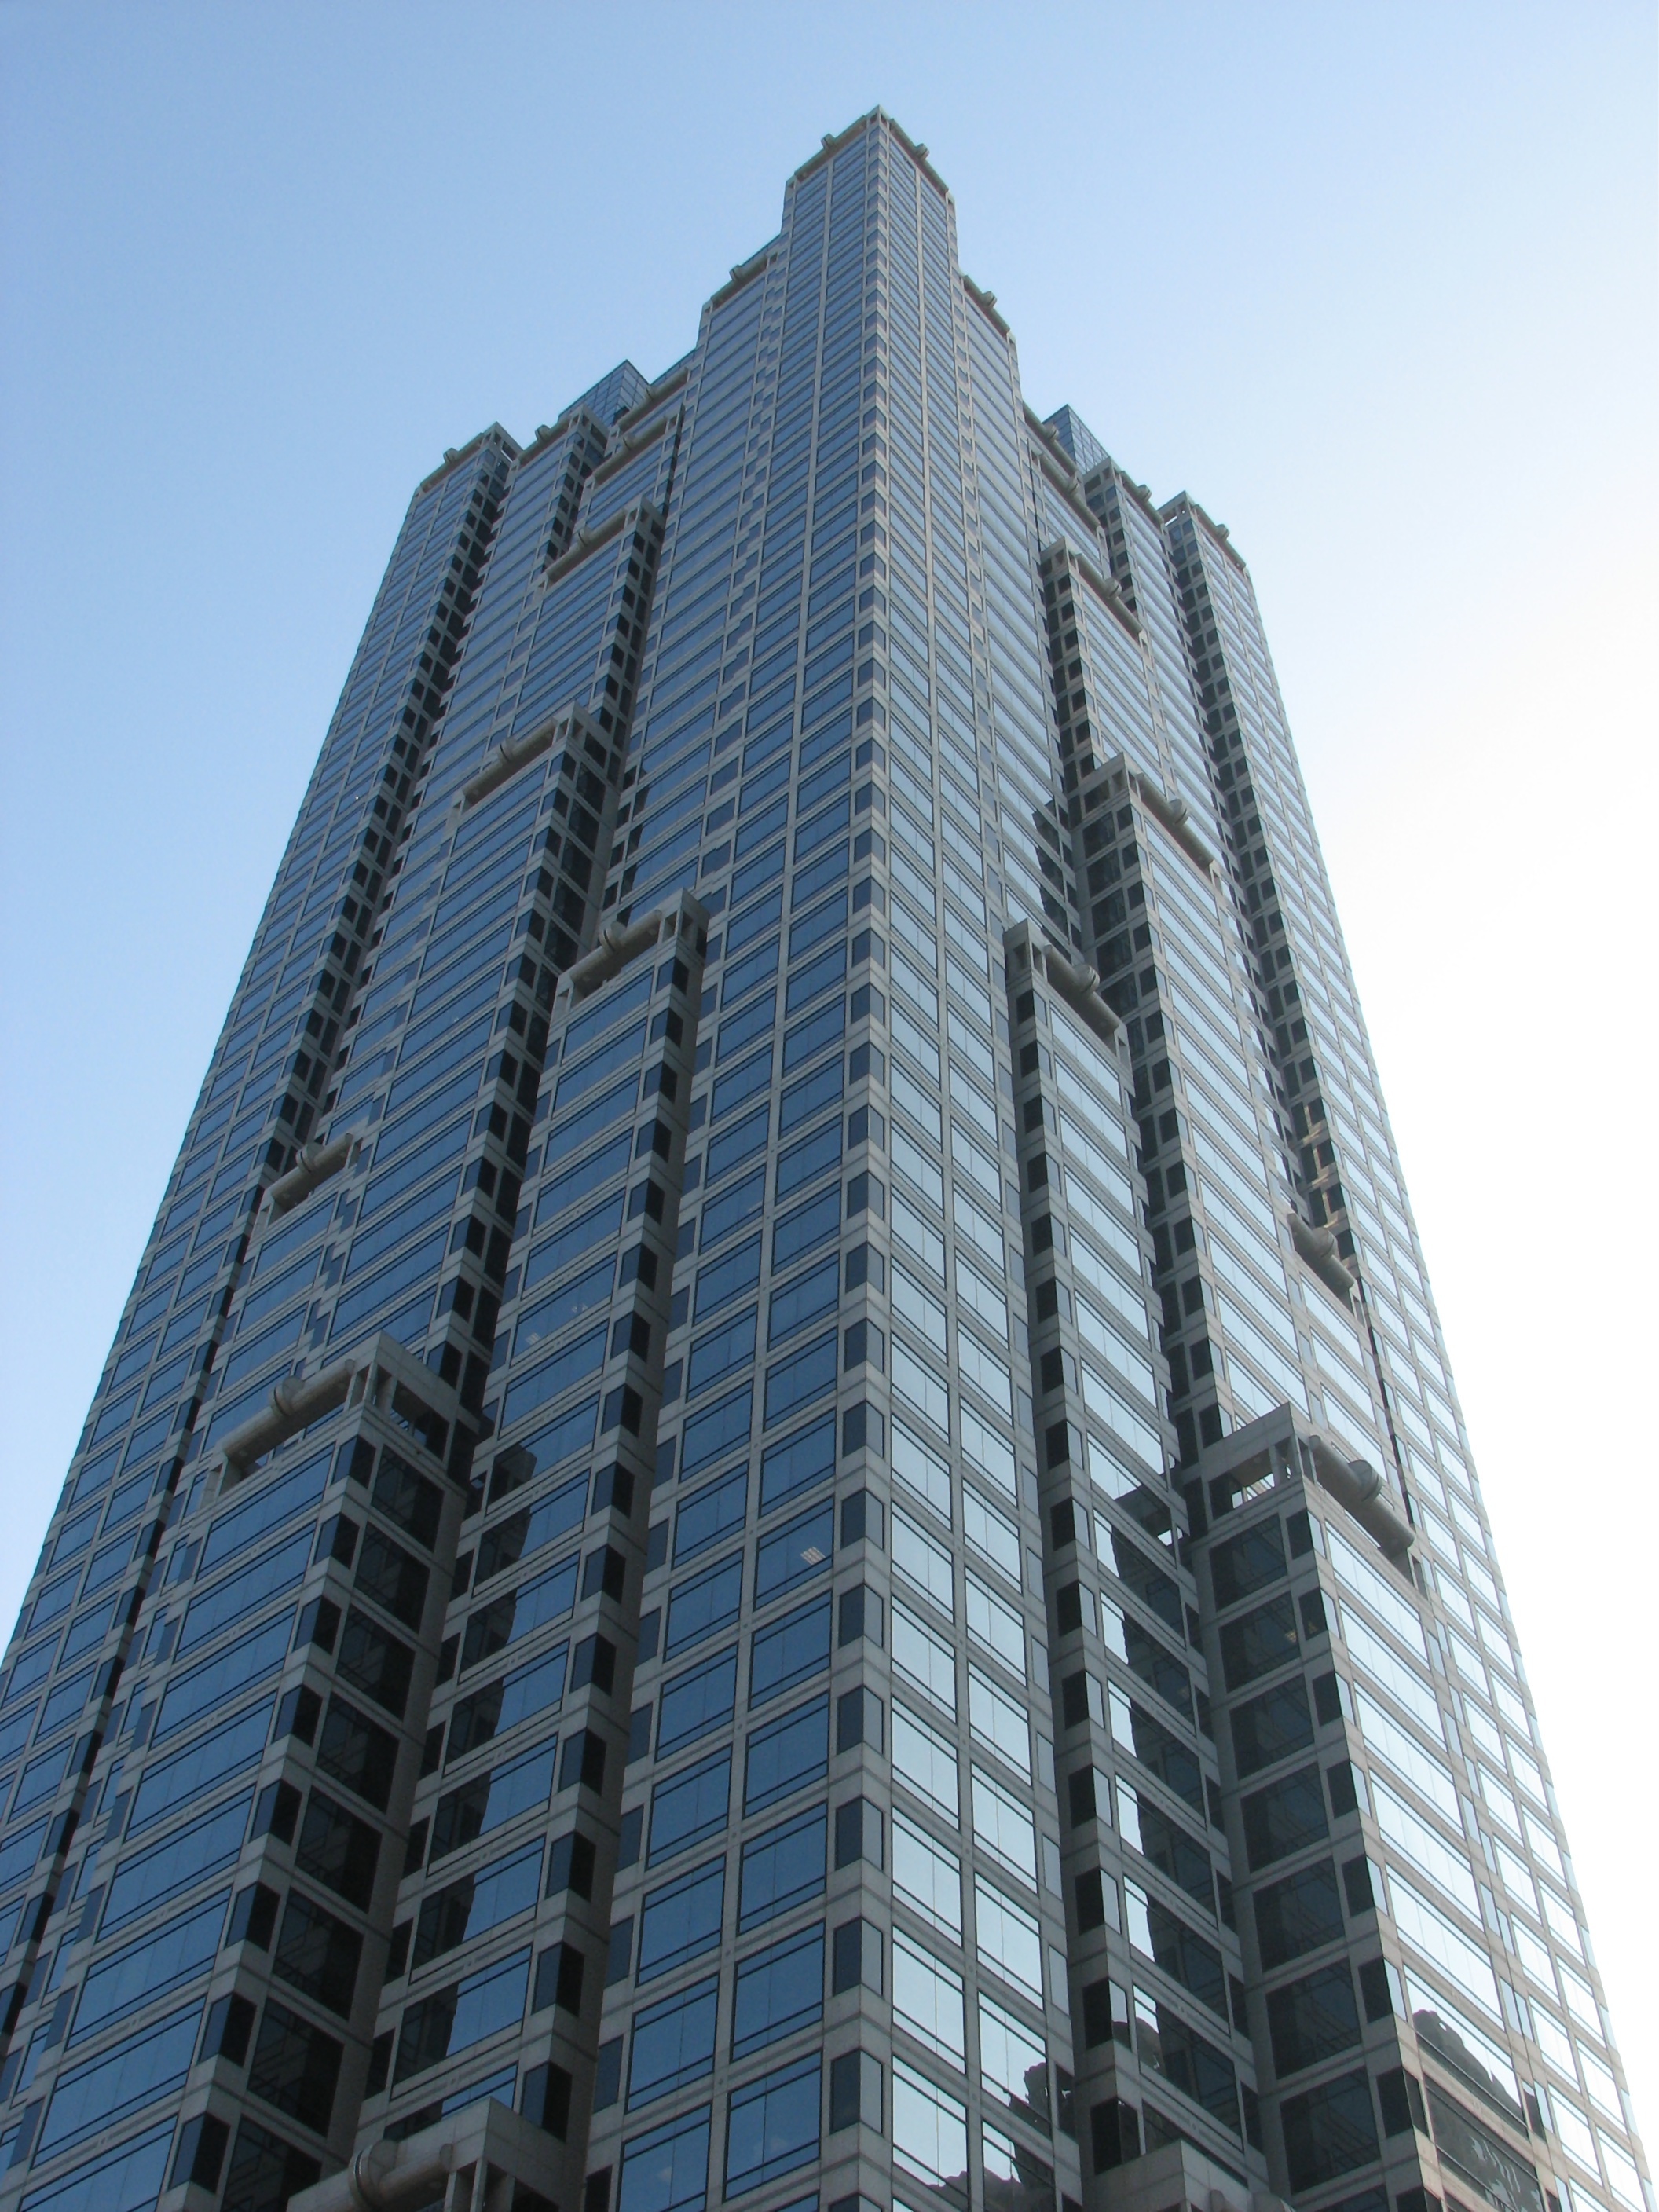 Tall building in downtown atlanta photo